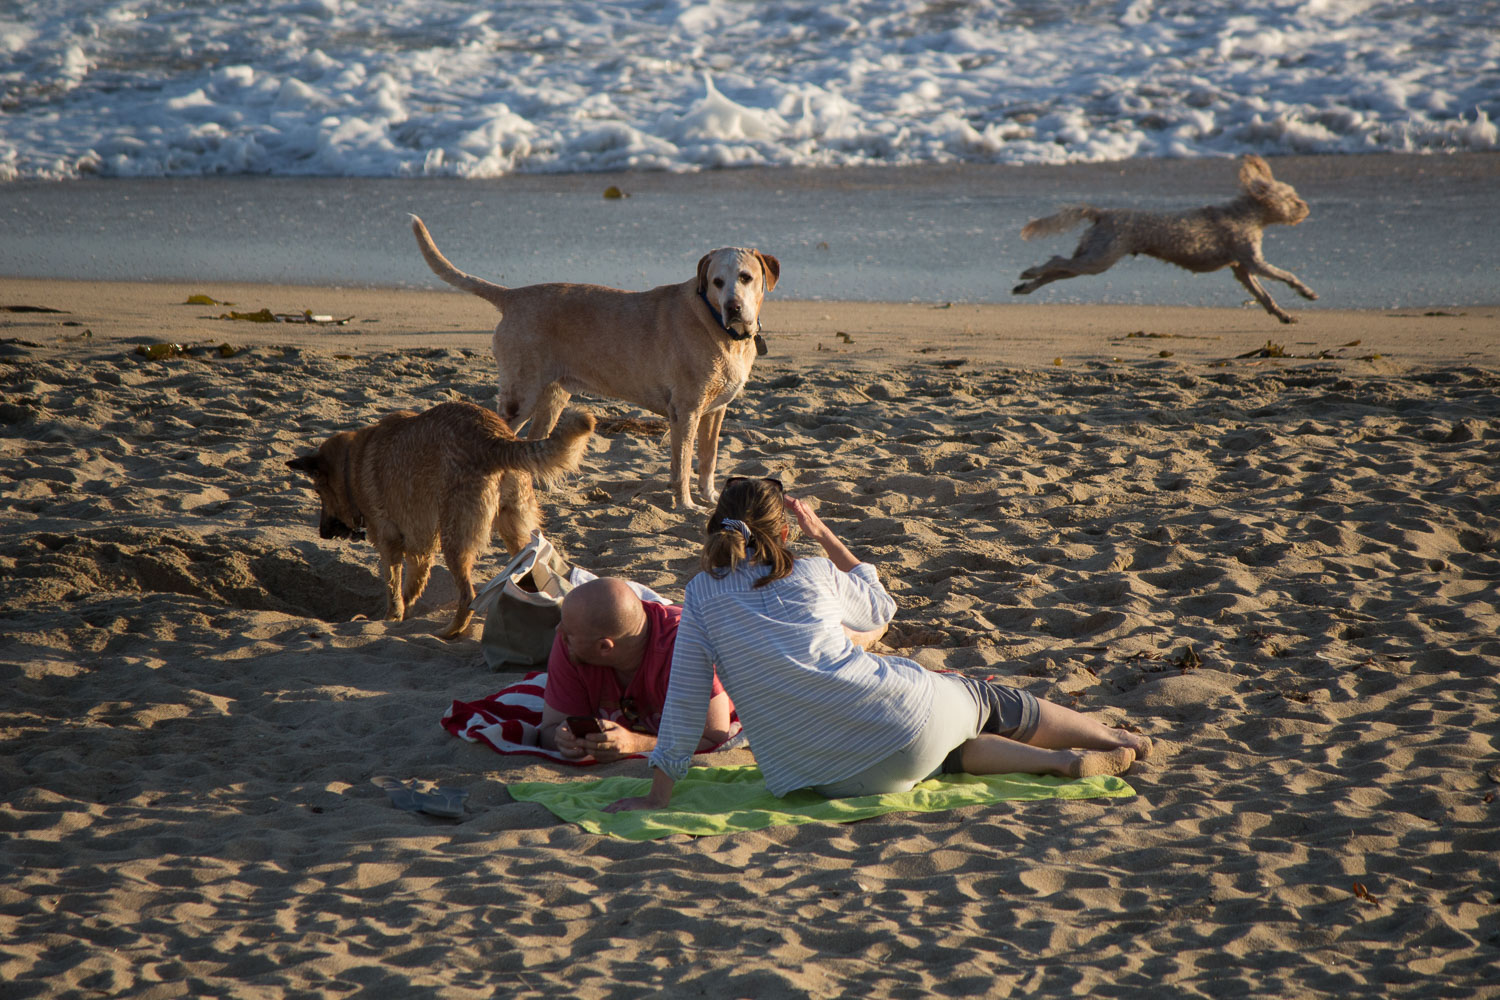 This photo taken June 18, 2016 at the Huntington Beach Dog Beach. Included in the   Surf City, U.S.A.  project on this website.